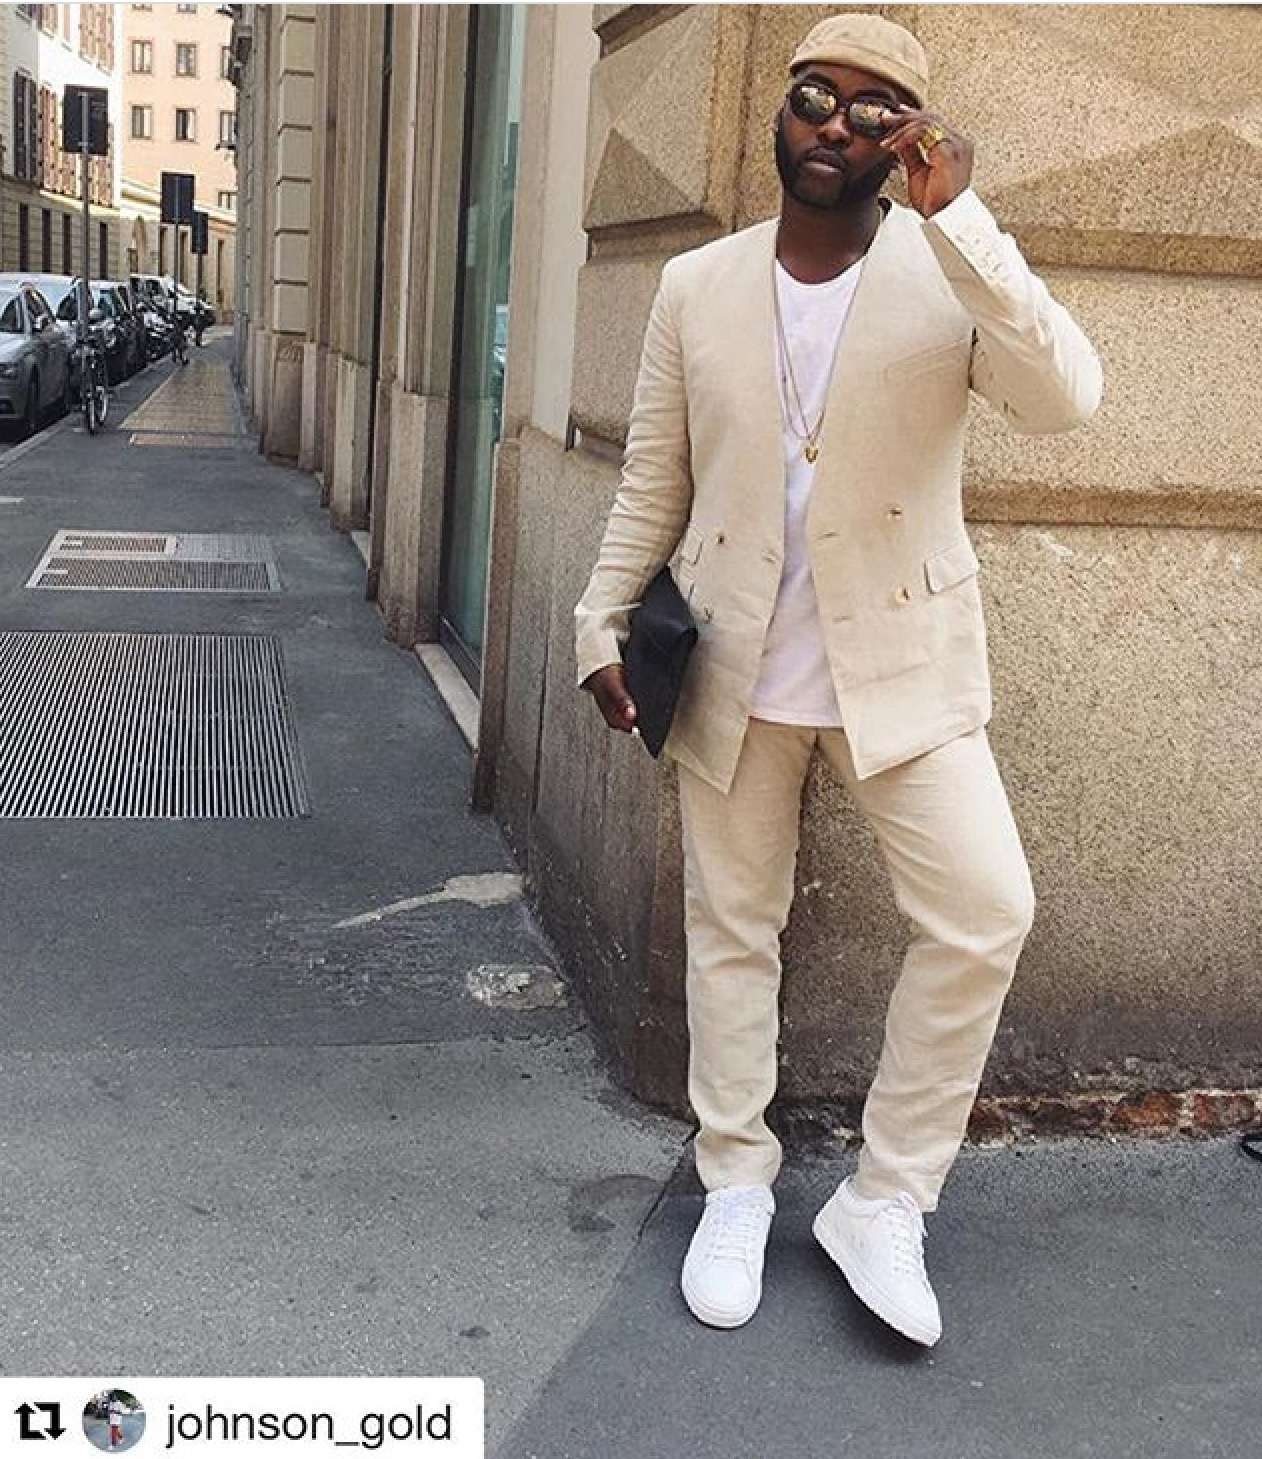 Johnson Gold from  @pause_online in his statement SS17 GANDHUM linen suit